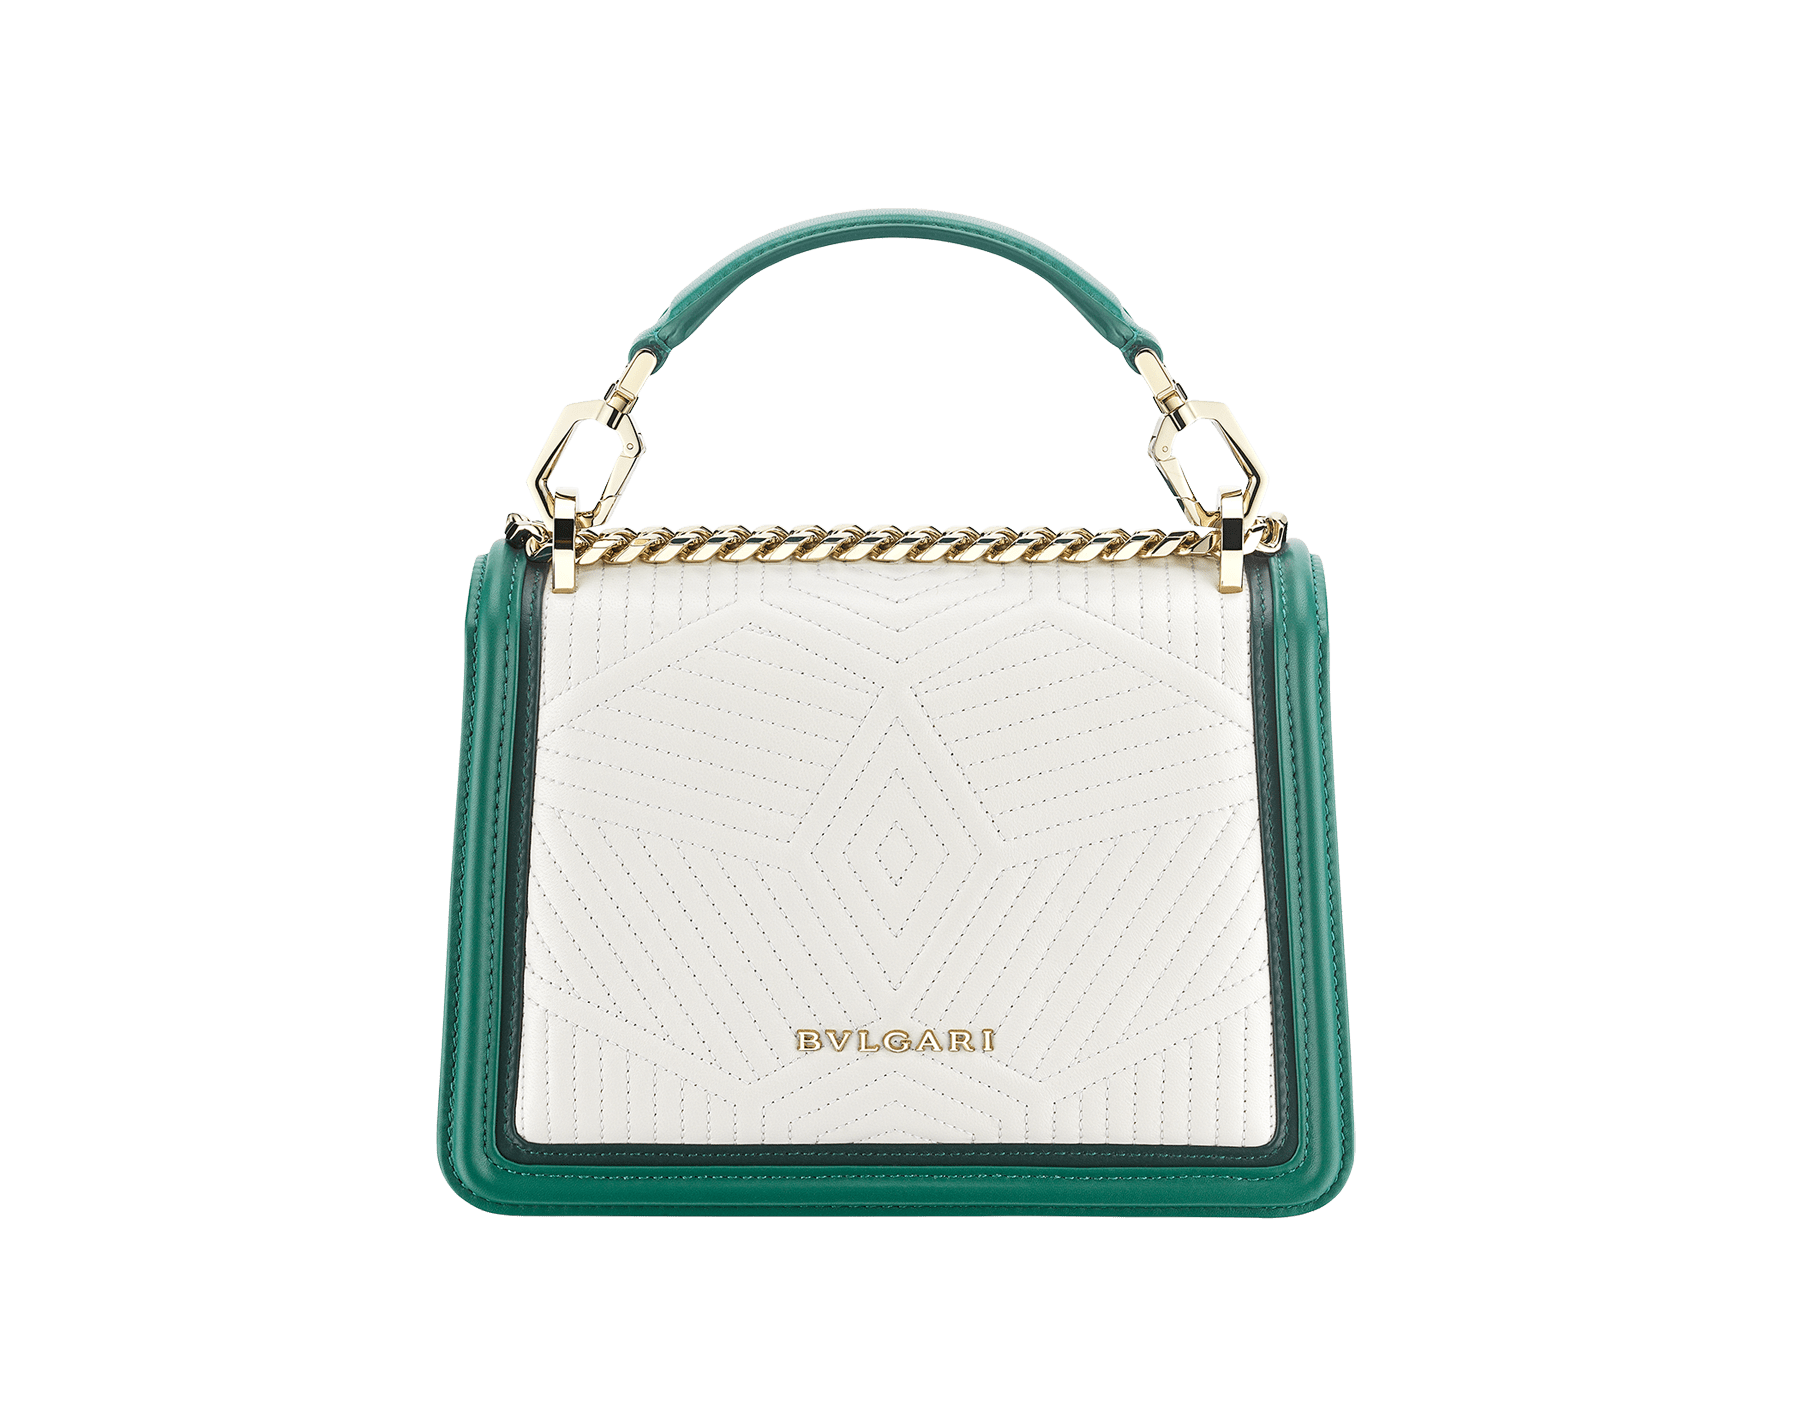 """""""Serpenti Diamond Blast"""" top handle bag in mimetic jade quilted nappa leather and mimetic jade smooth calf leather frames. Iconic snakehead closure in light gold plated brass enriched with matte black and shiny mimetic jade enamel and black onyx eyes. 1063-FQDb image 3"""